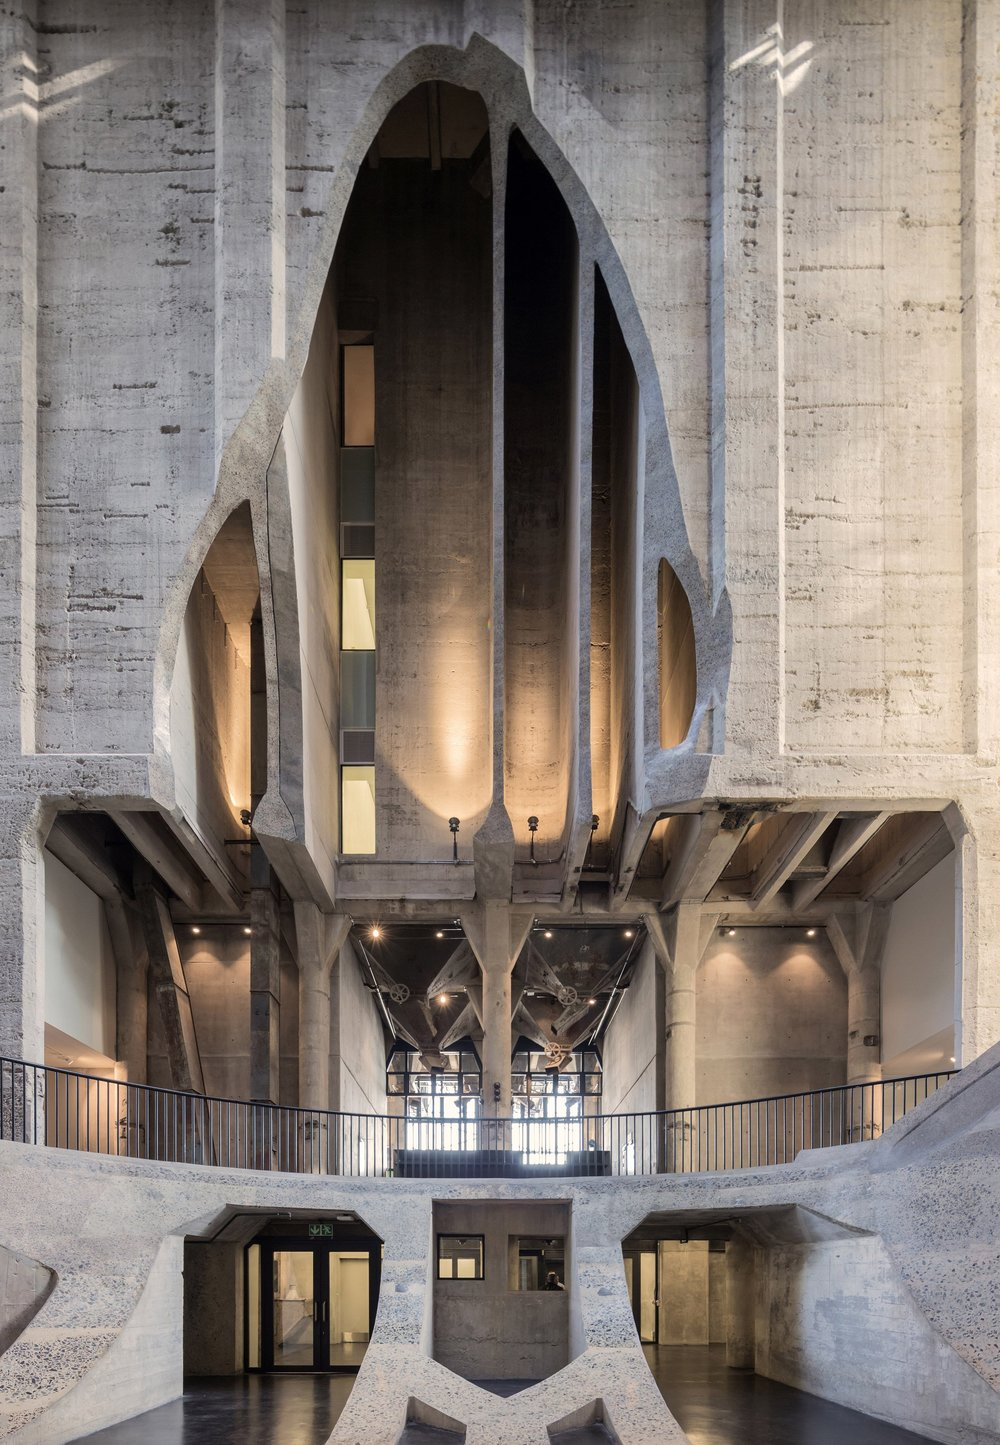 heatherwick-architecture-cultural-galleries-v-and-a-south-africa-interior_dezeen_2364_col_2.jpg